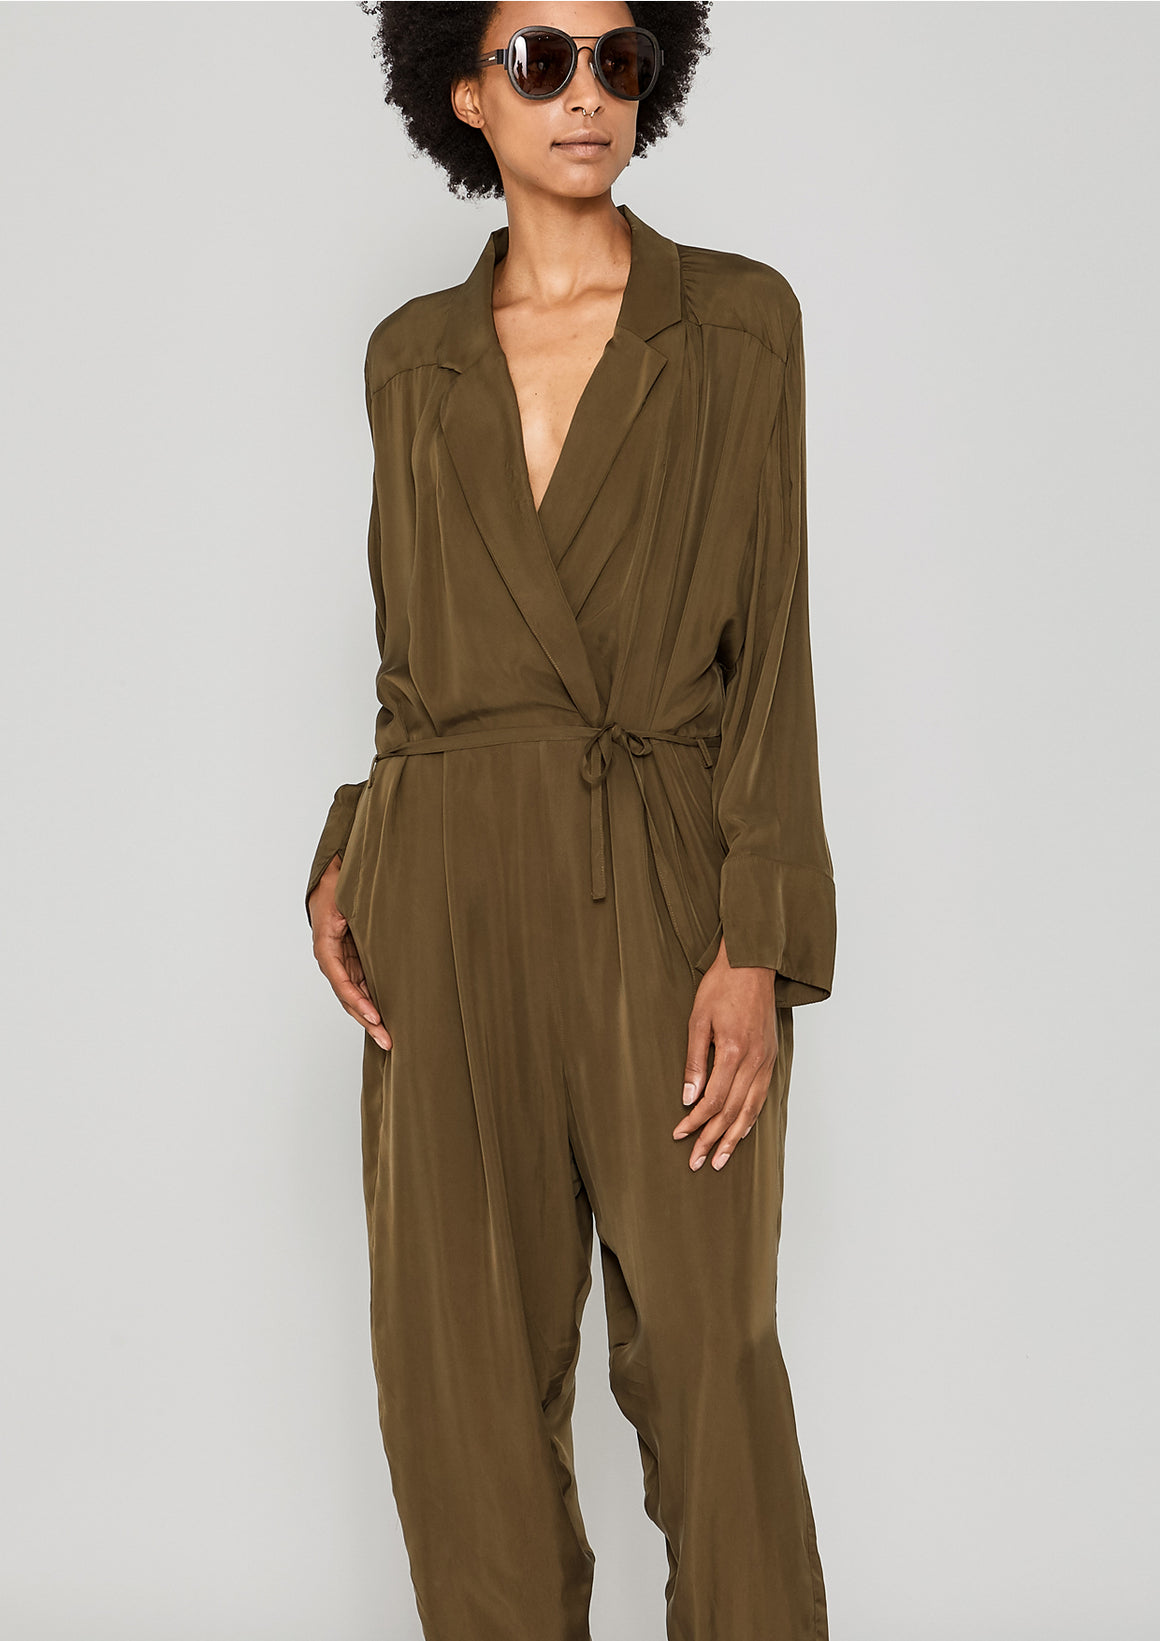 JUMPSUIT REVERS LONG - SILKY CUPRO khaki